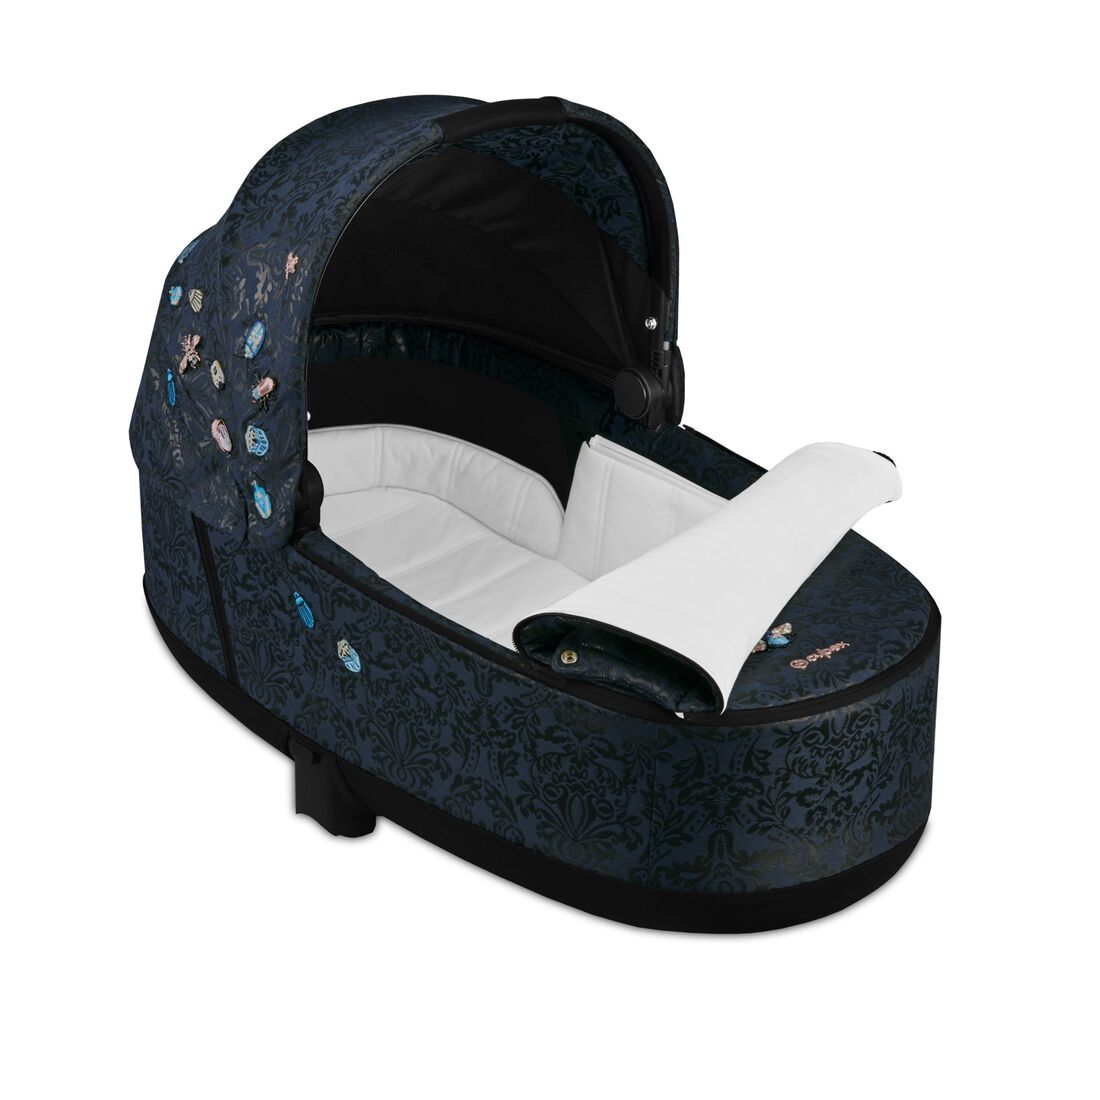 CYBEX Priam Lux Carry Cot - Jewels of Nature in Jewels of Nature large image number 2